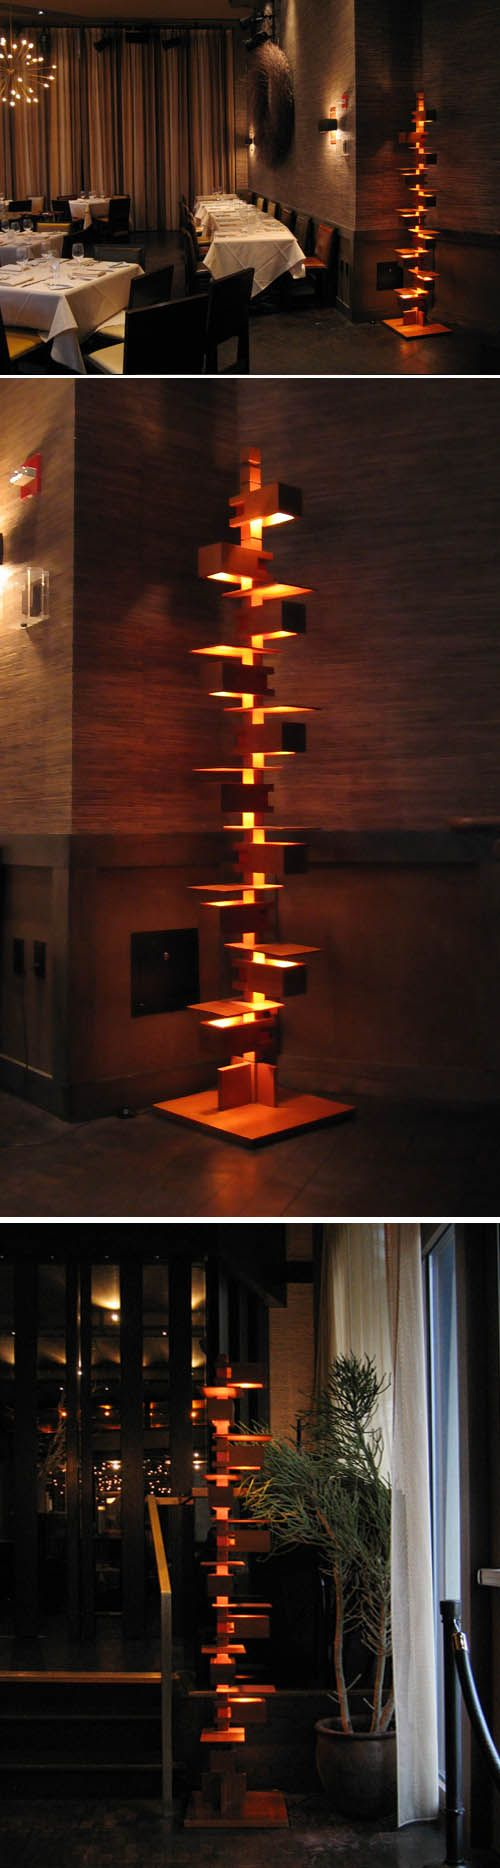 Yamagiwa frank lloyd wright taliesin floor lamp usd